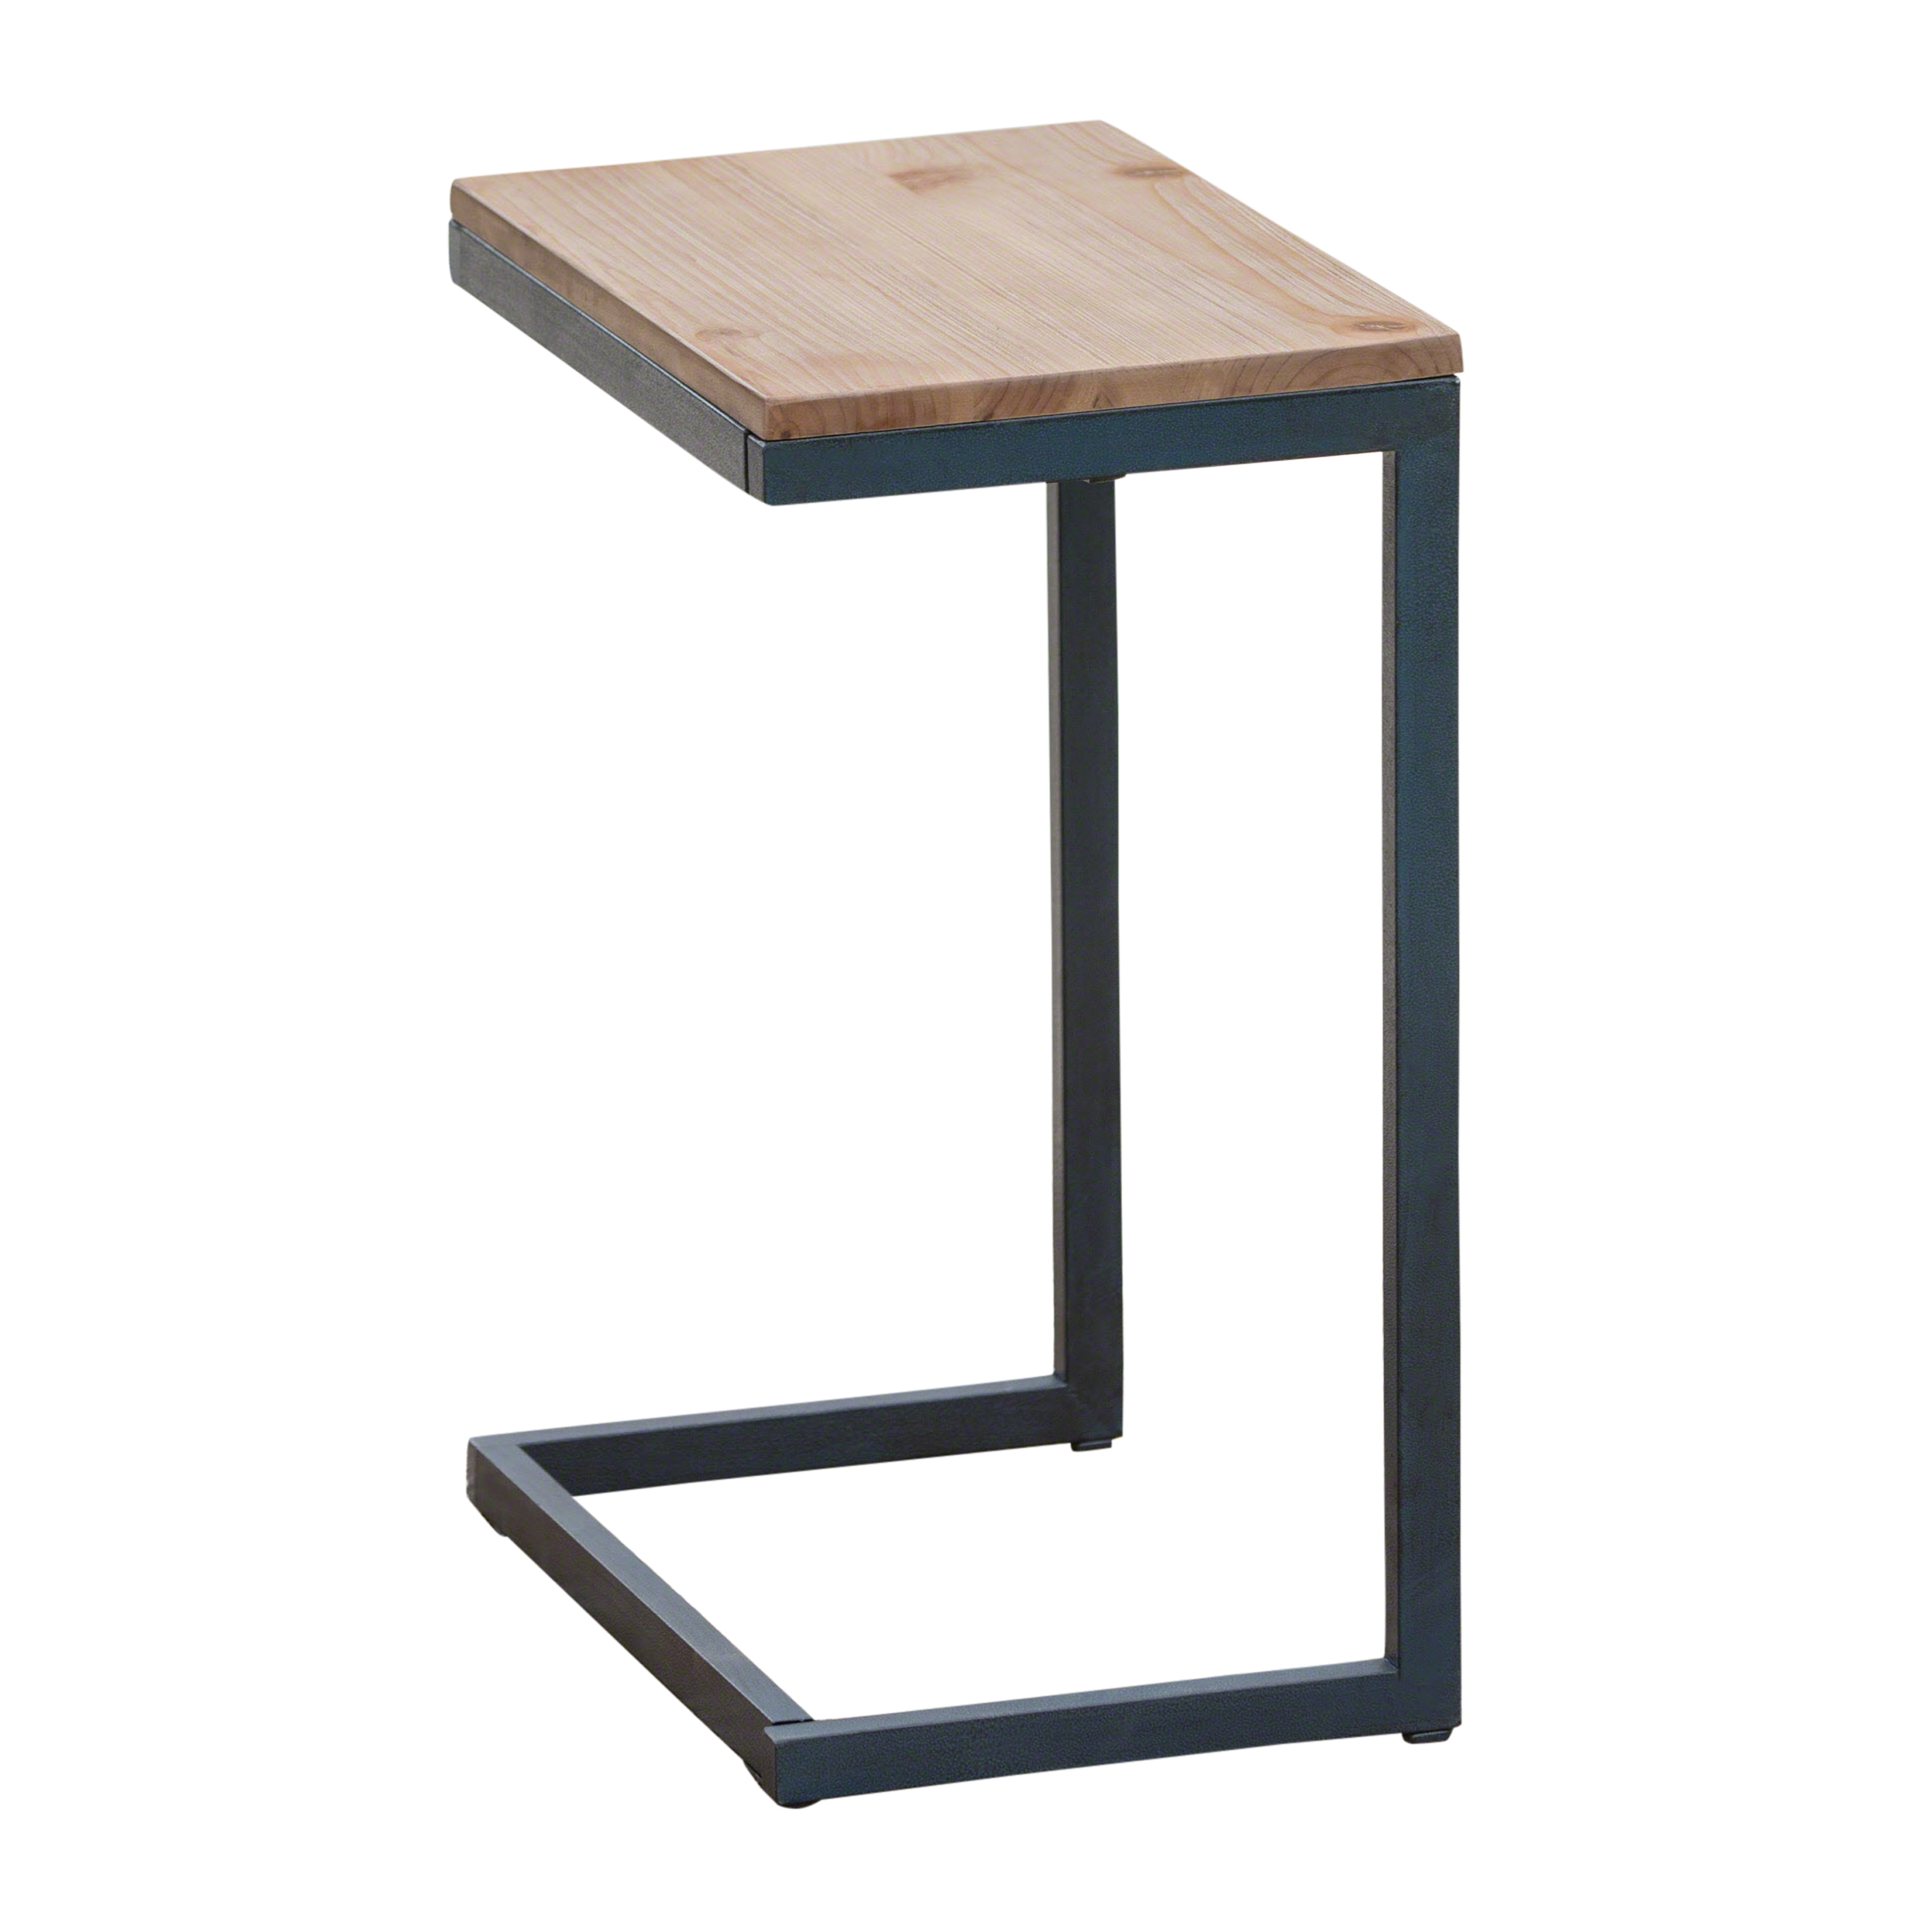 Amaya Outdoor Firwood C Shaped Accent Table Antique And